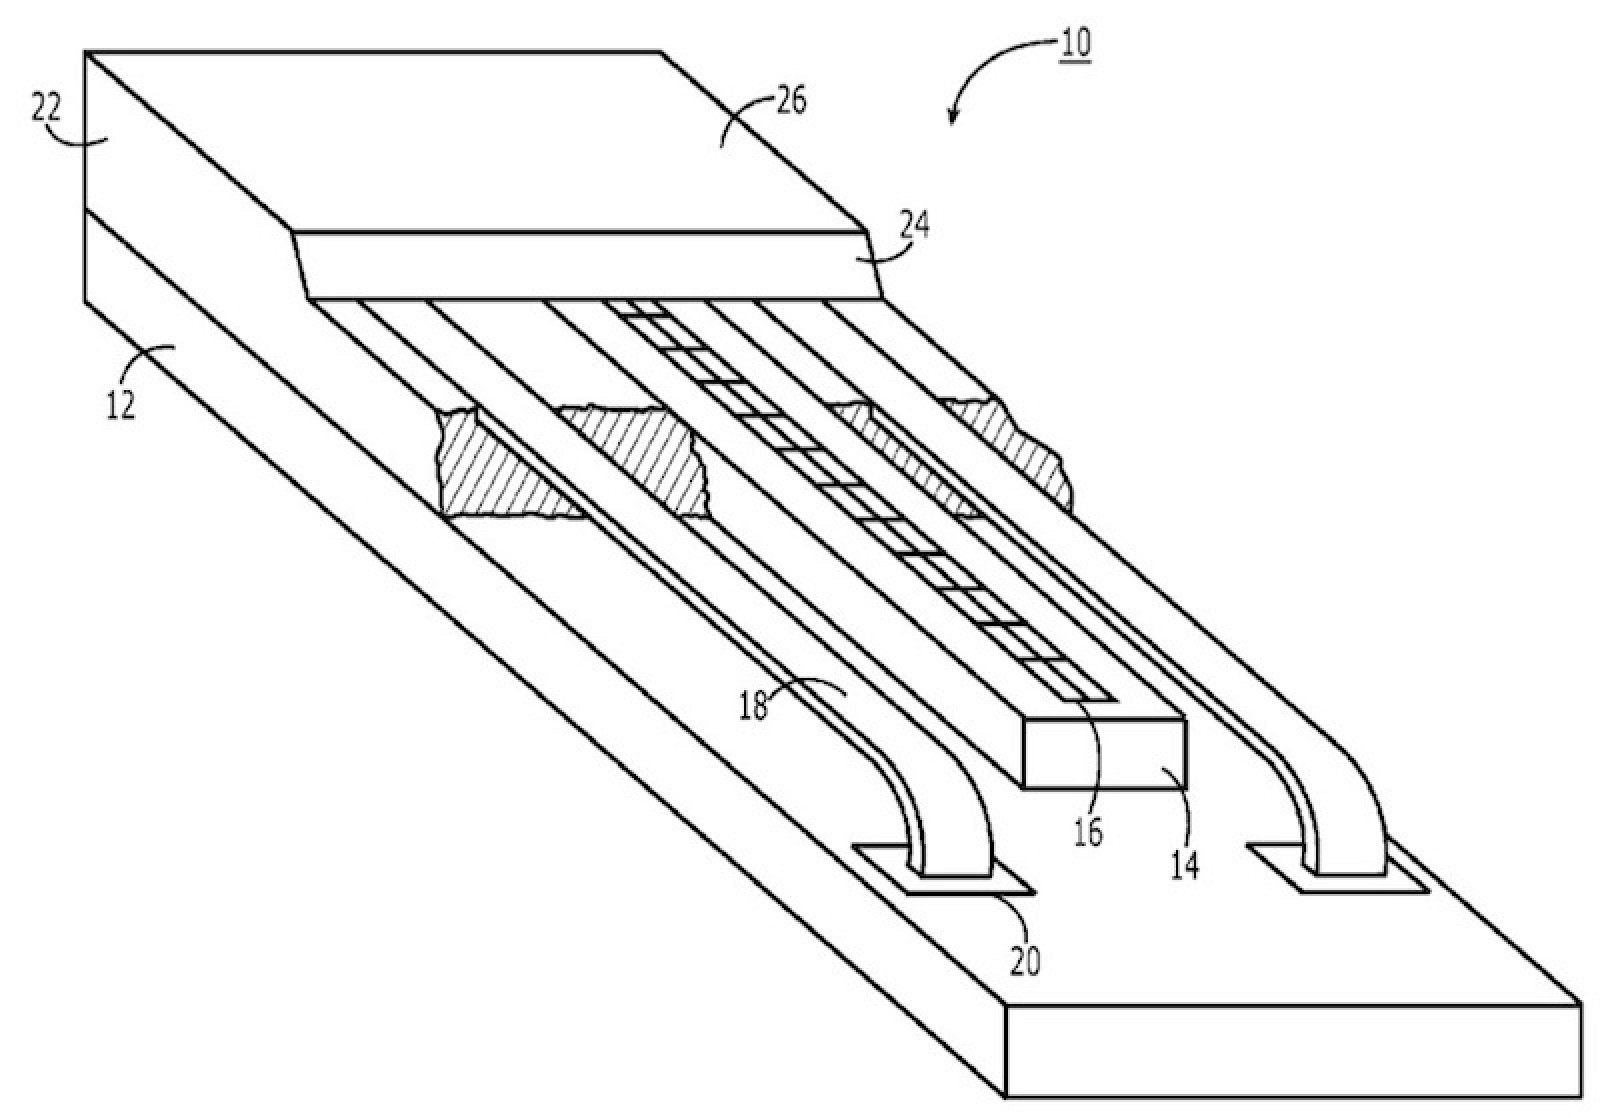 Apple Applies for Patent on Fingerprint Sensor Packaging